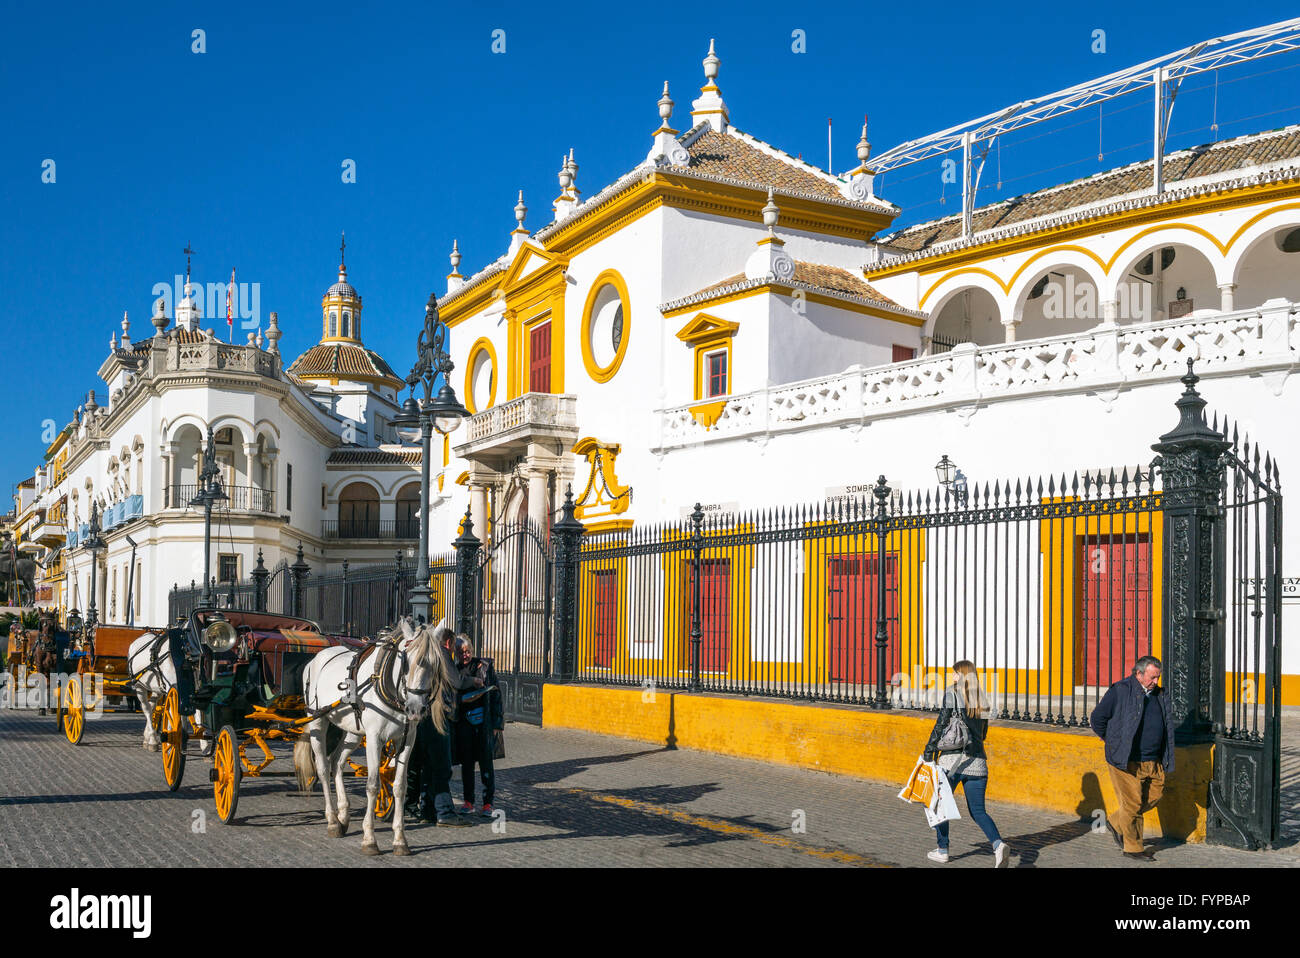 Spain, Andalusia, Seville, carriages in front of the Plaza de Toros (Bullring) and Real Maestranza de Caballeria - Stock Image